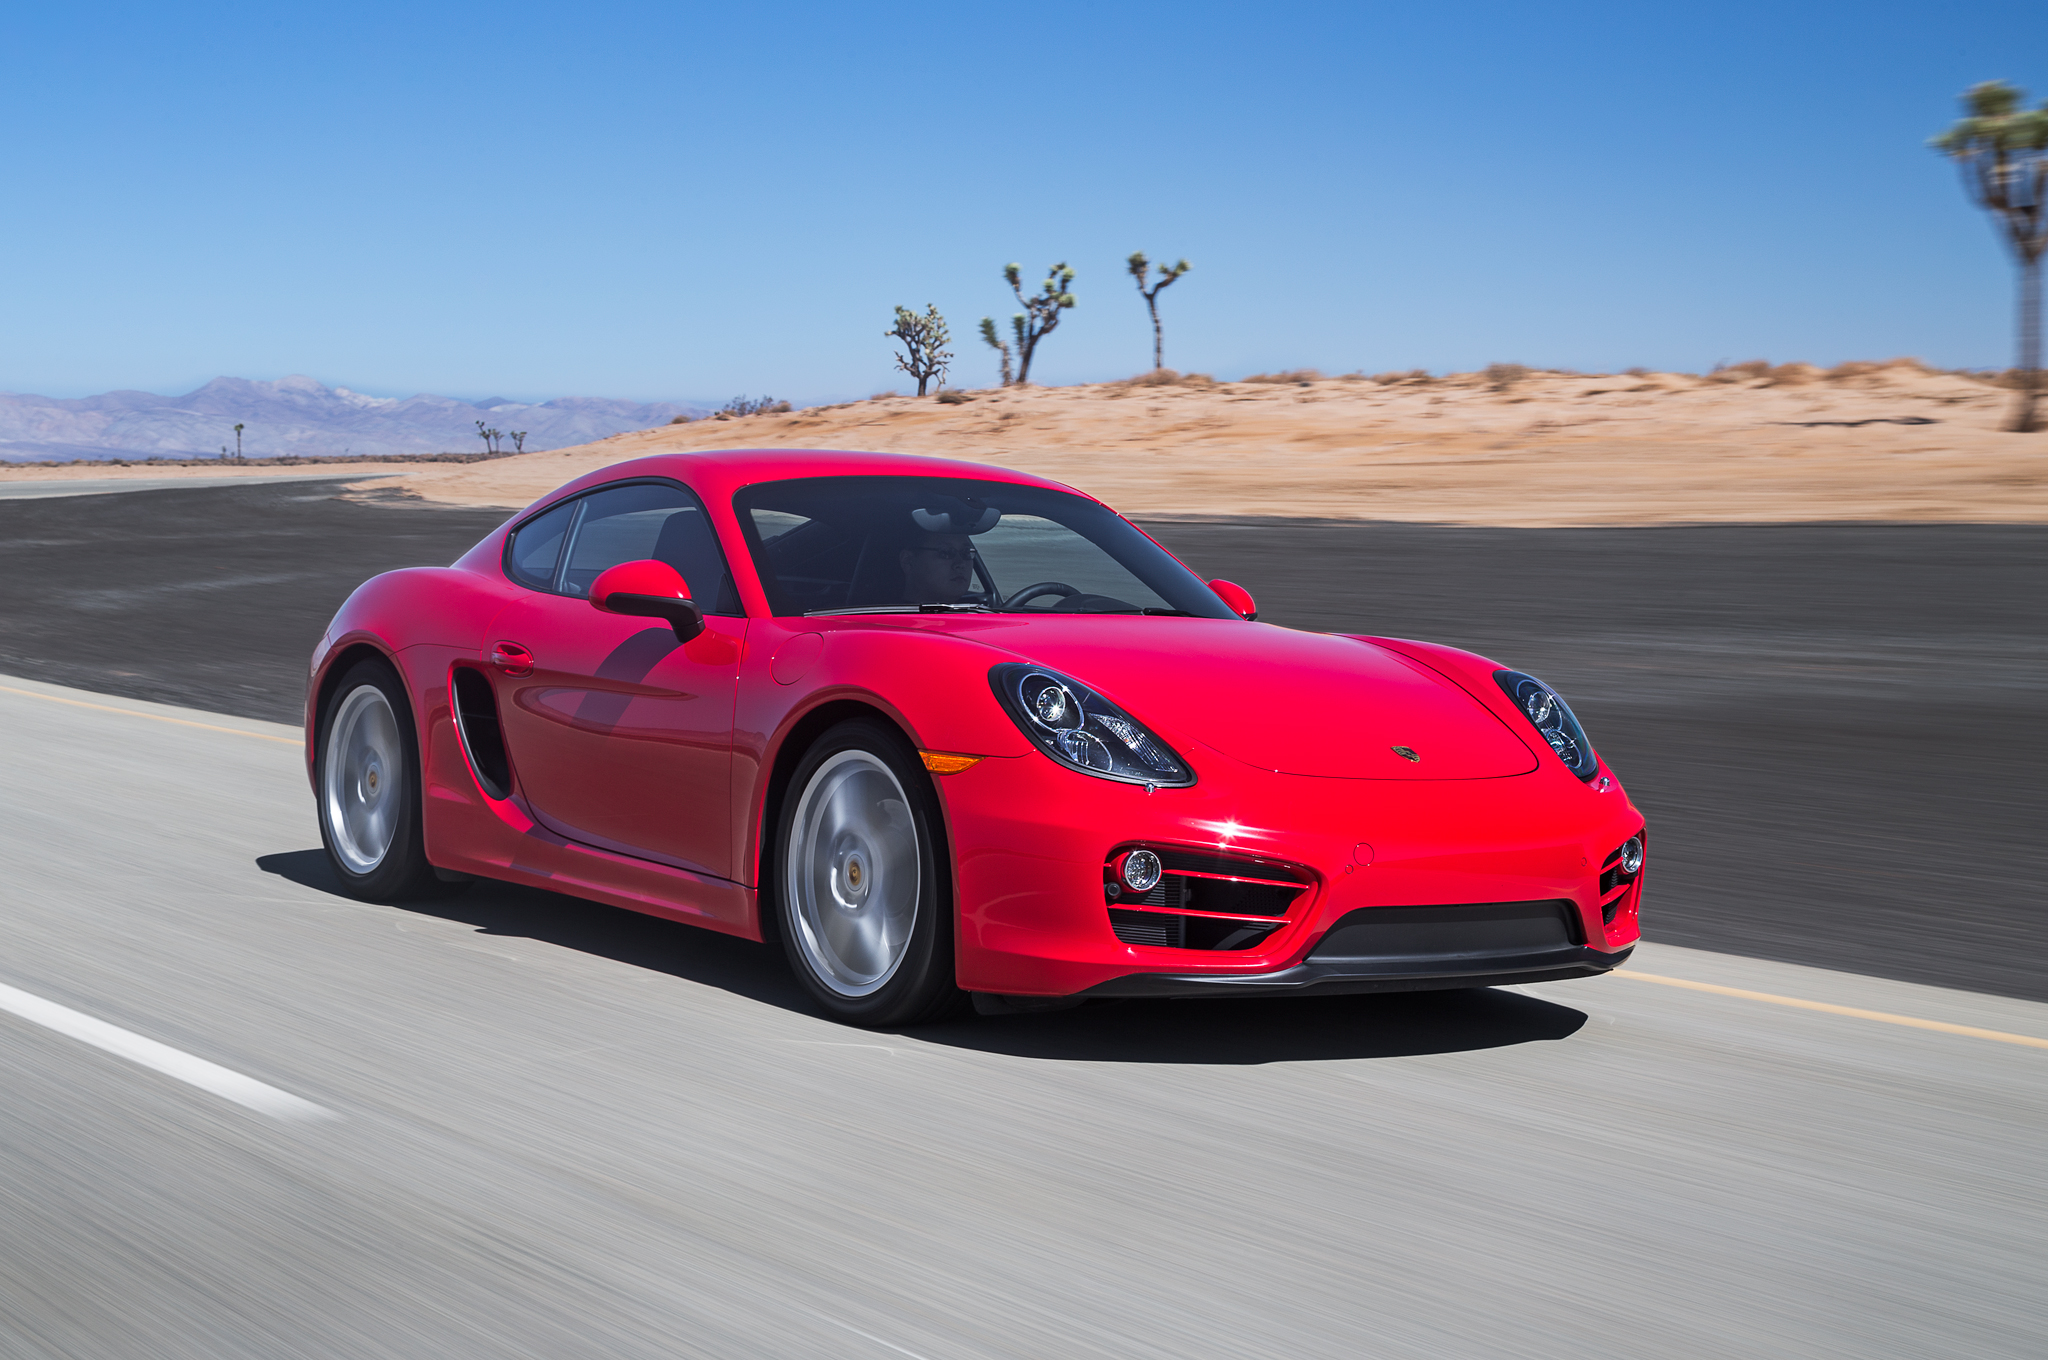 2014 Porsche Cayman Test (View 5 of 8)